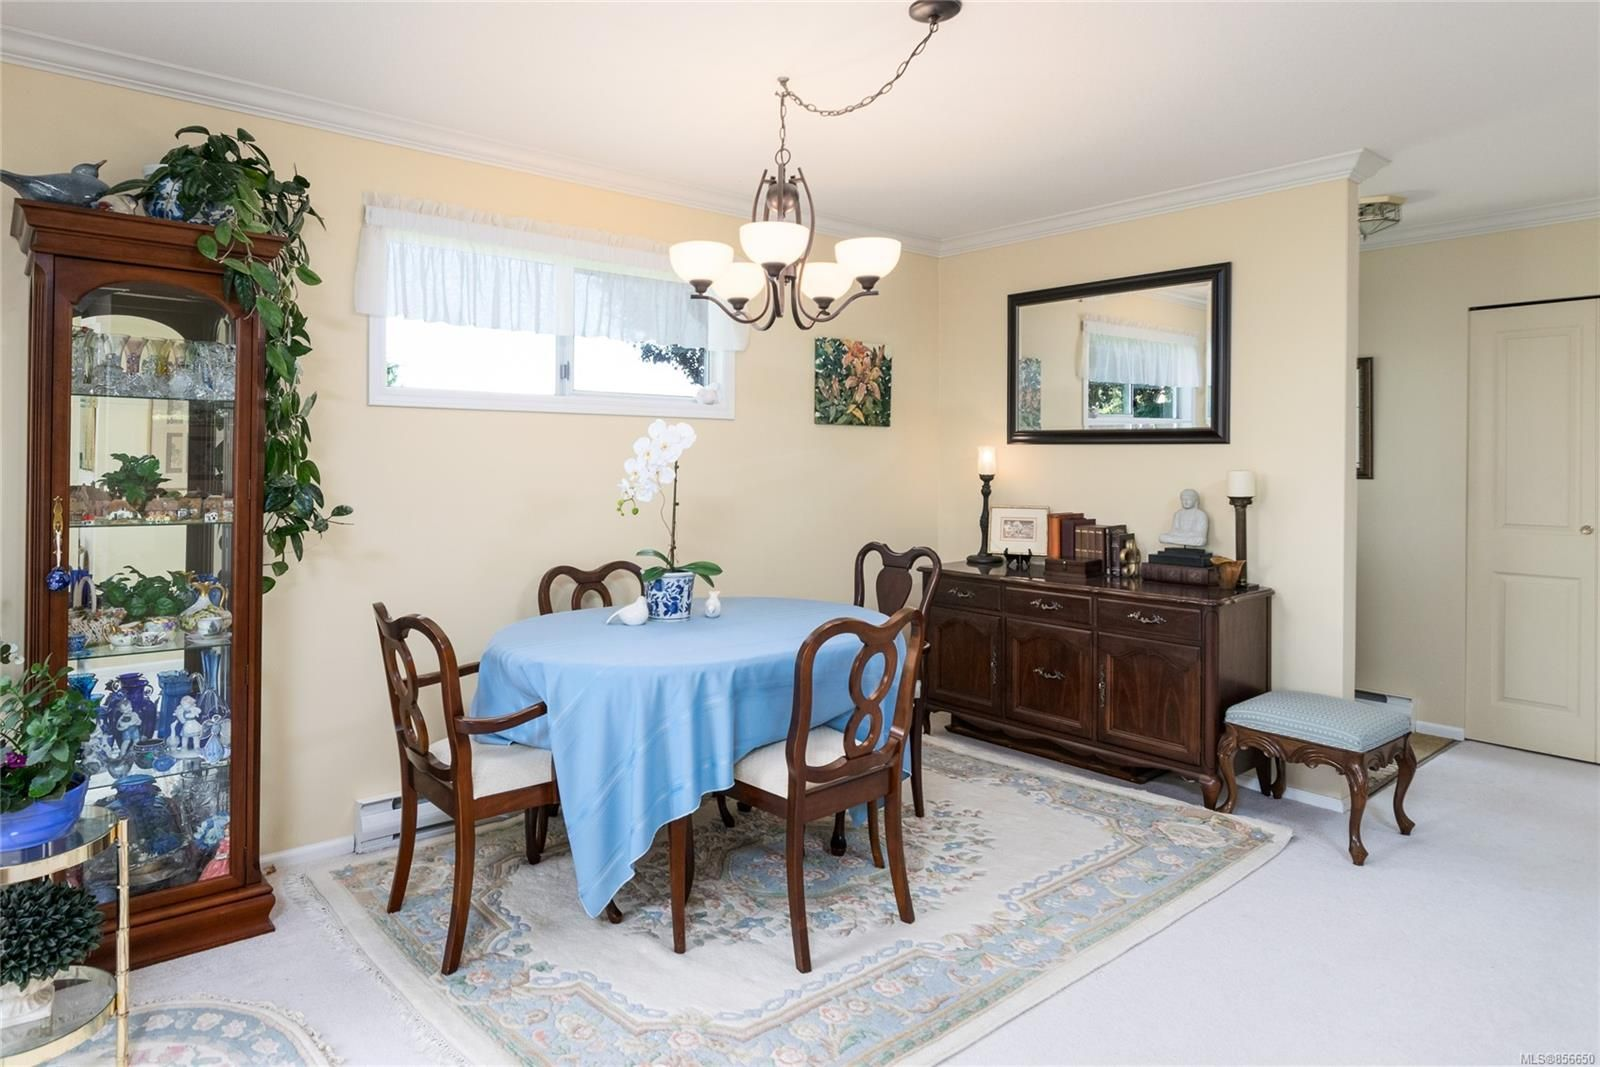 Photo 6: Photos: 4 305 Blower Rd in : PQ Parksville Row/Townhouse for sale (Parksville/Qualicum)  : MLS®# 856650